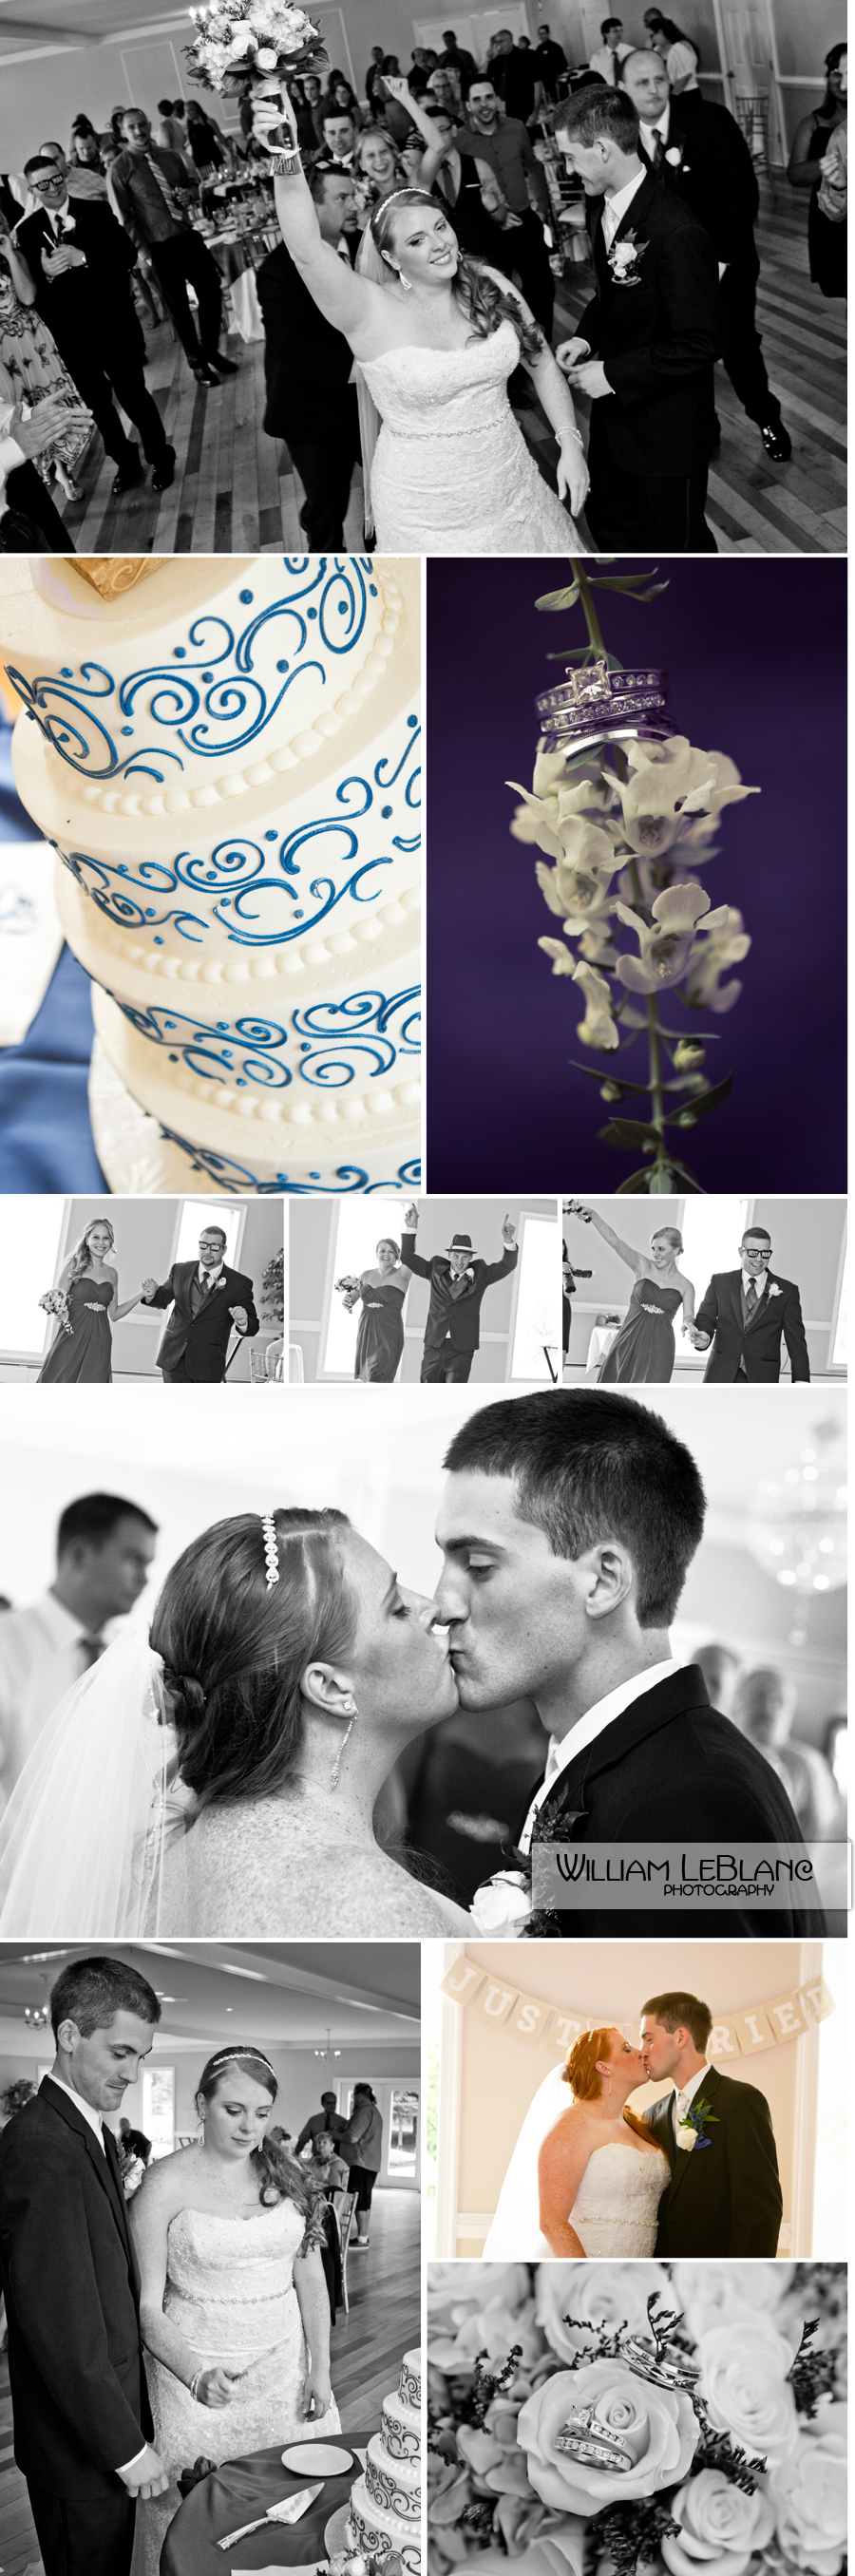 albany wedding photographer Blog.4